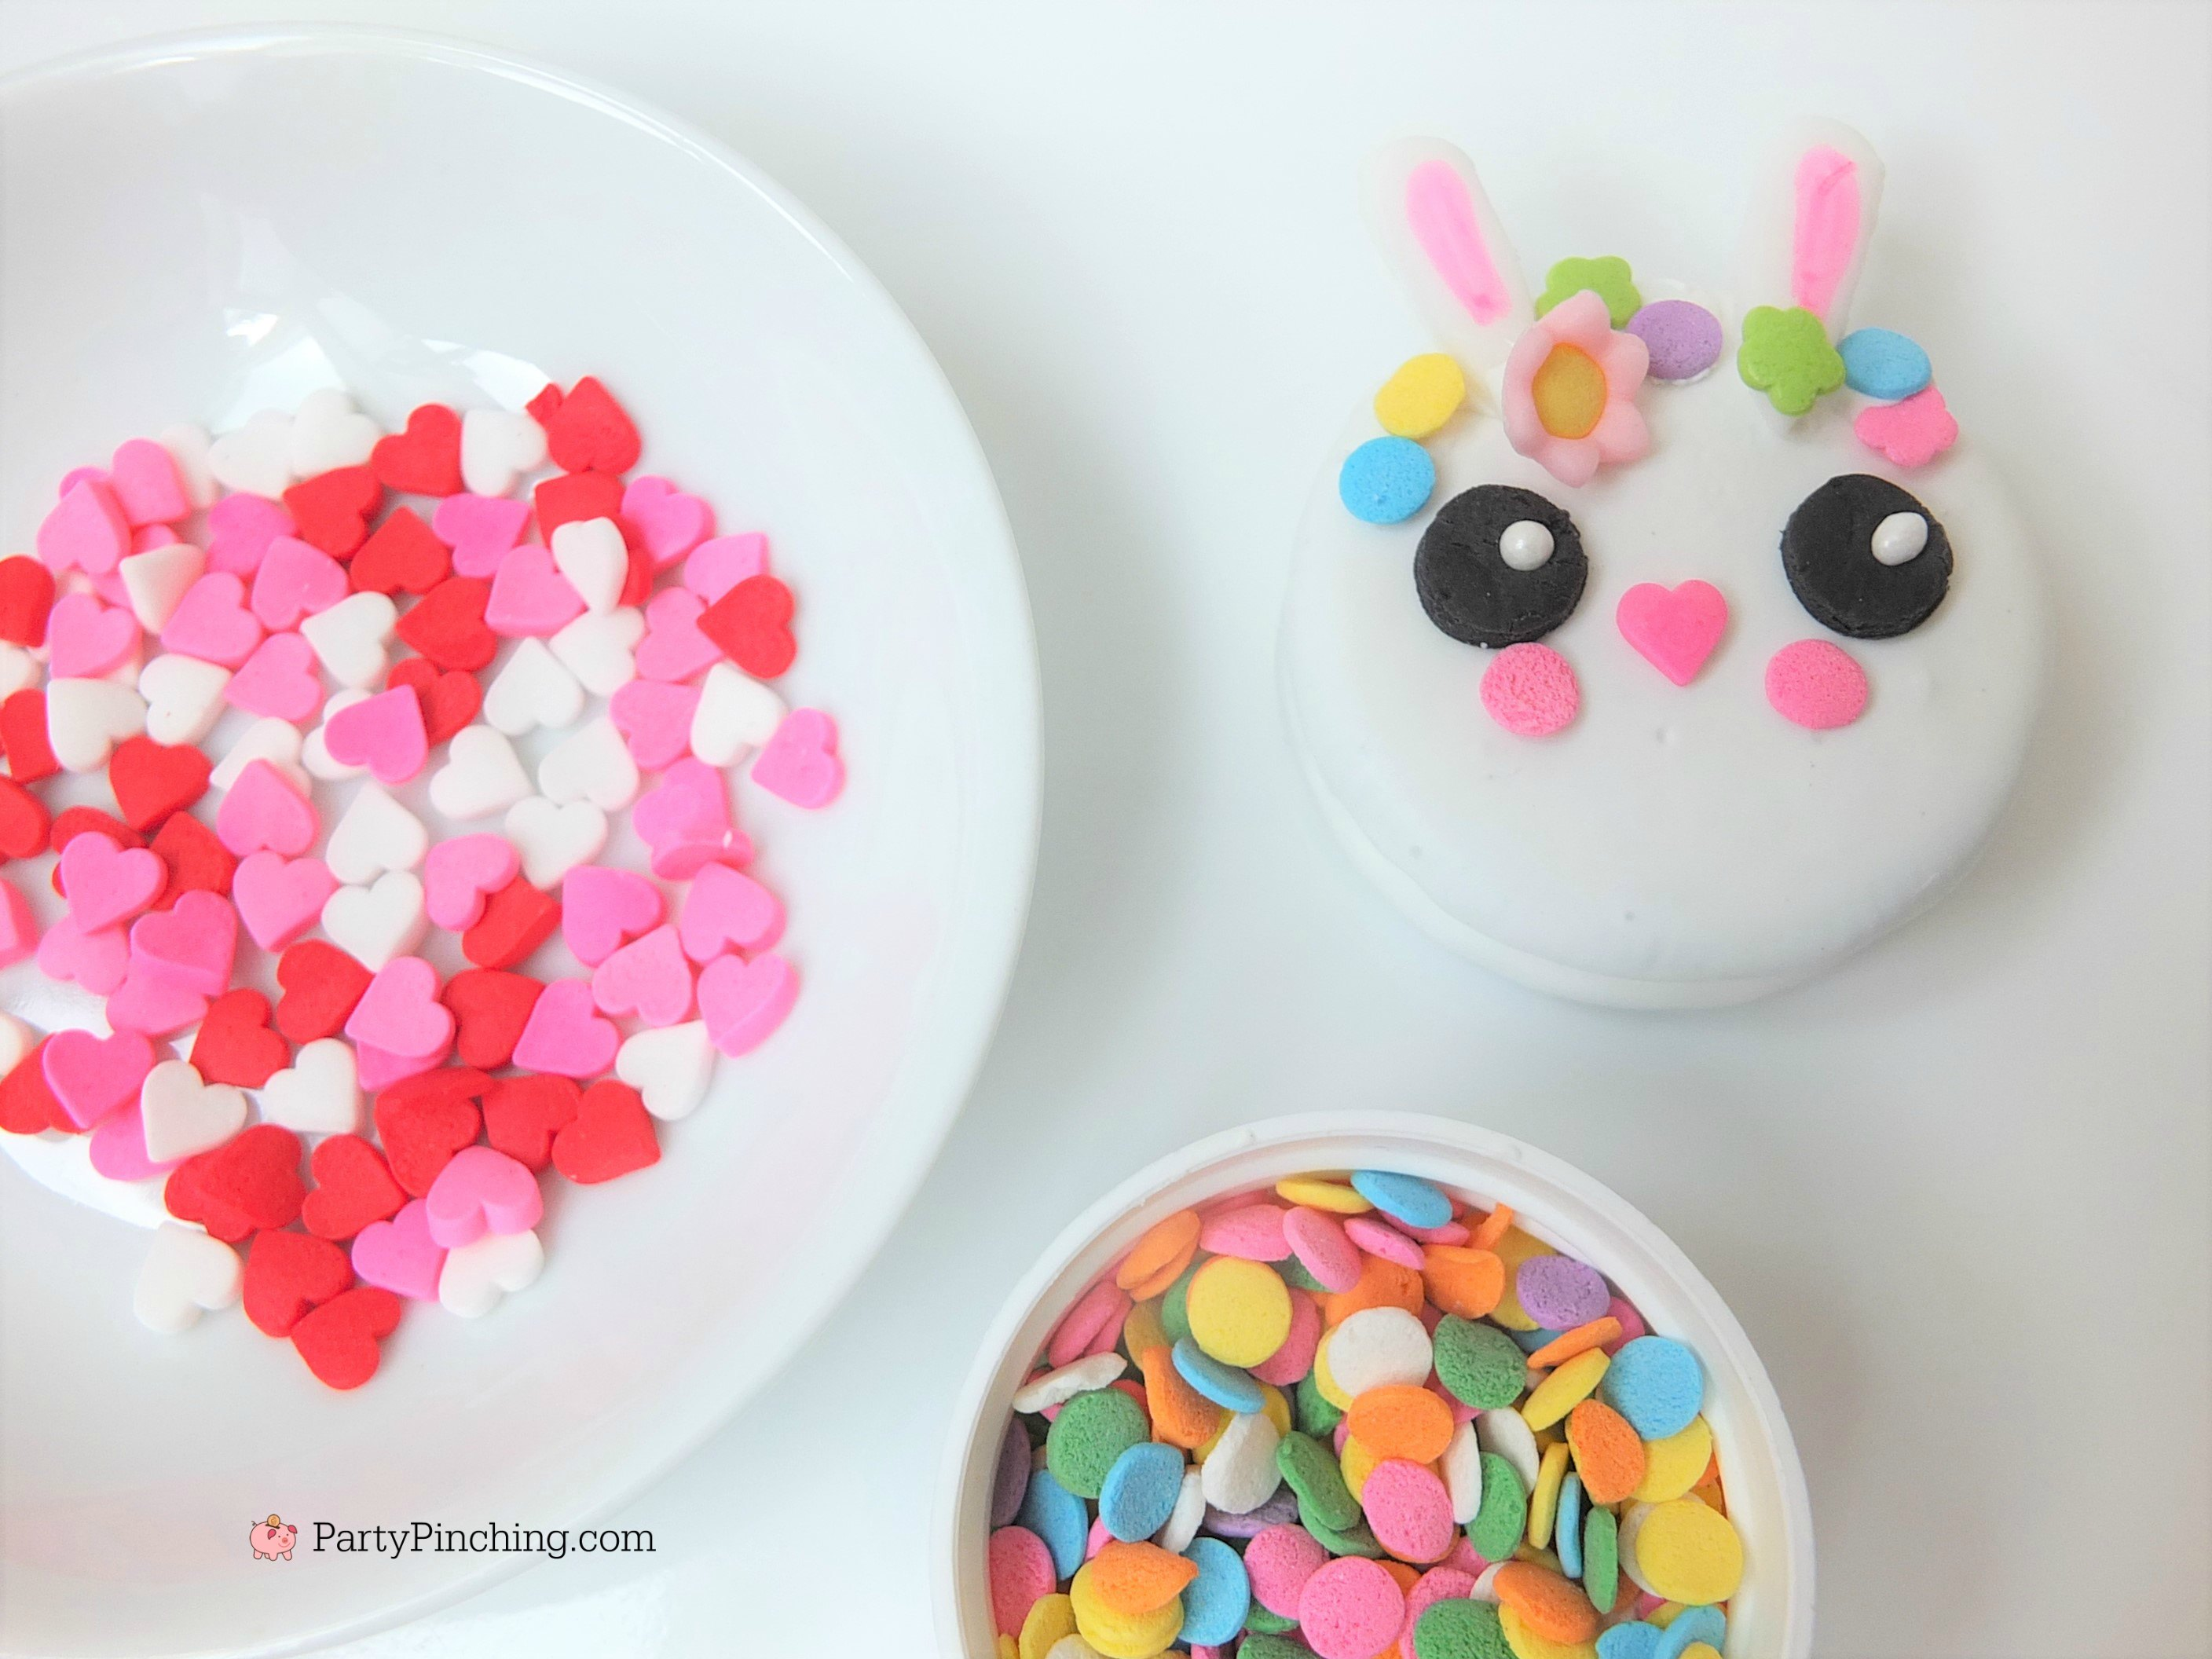 bunny oreo cookies, cute Easter bunny cookies with flower crown, fun easy to make bunny cookies, kawaii bunny animal oreos for kids